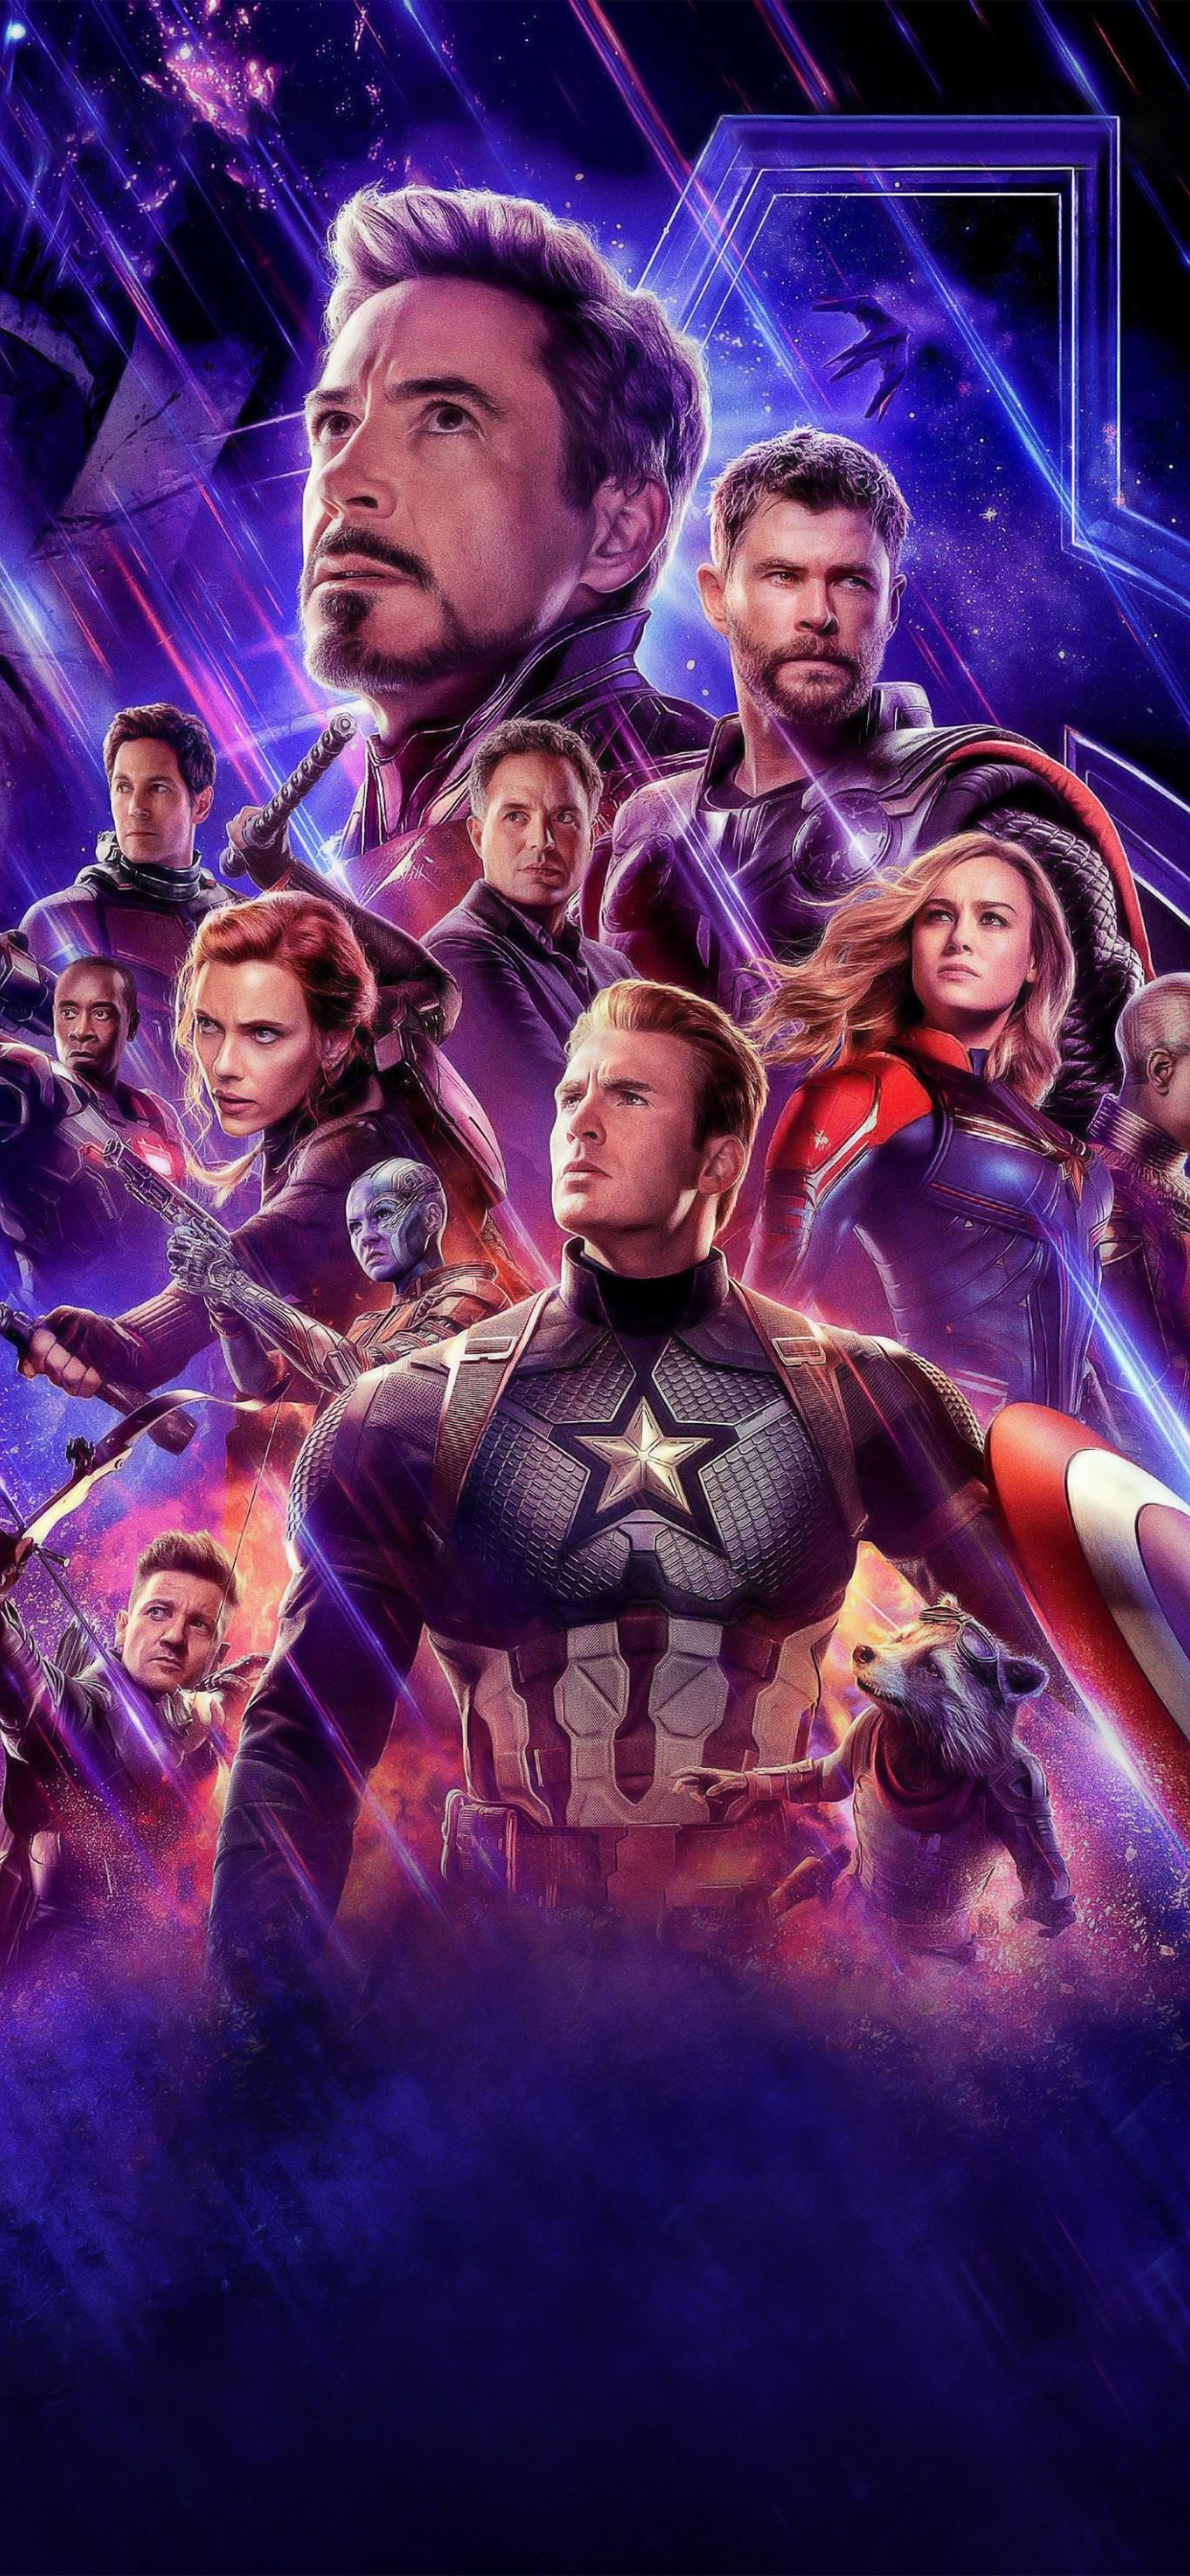 1242x2688 Poster Of Avengers Endgame Movie Iphone Xs Max Wallpaper